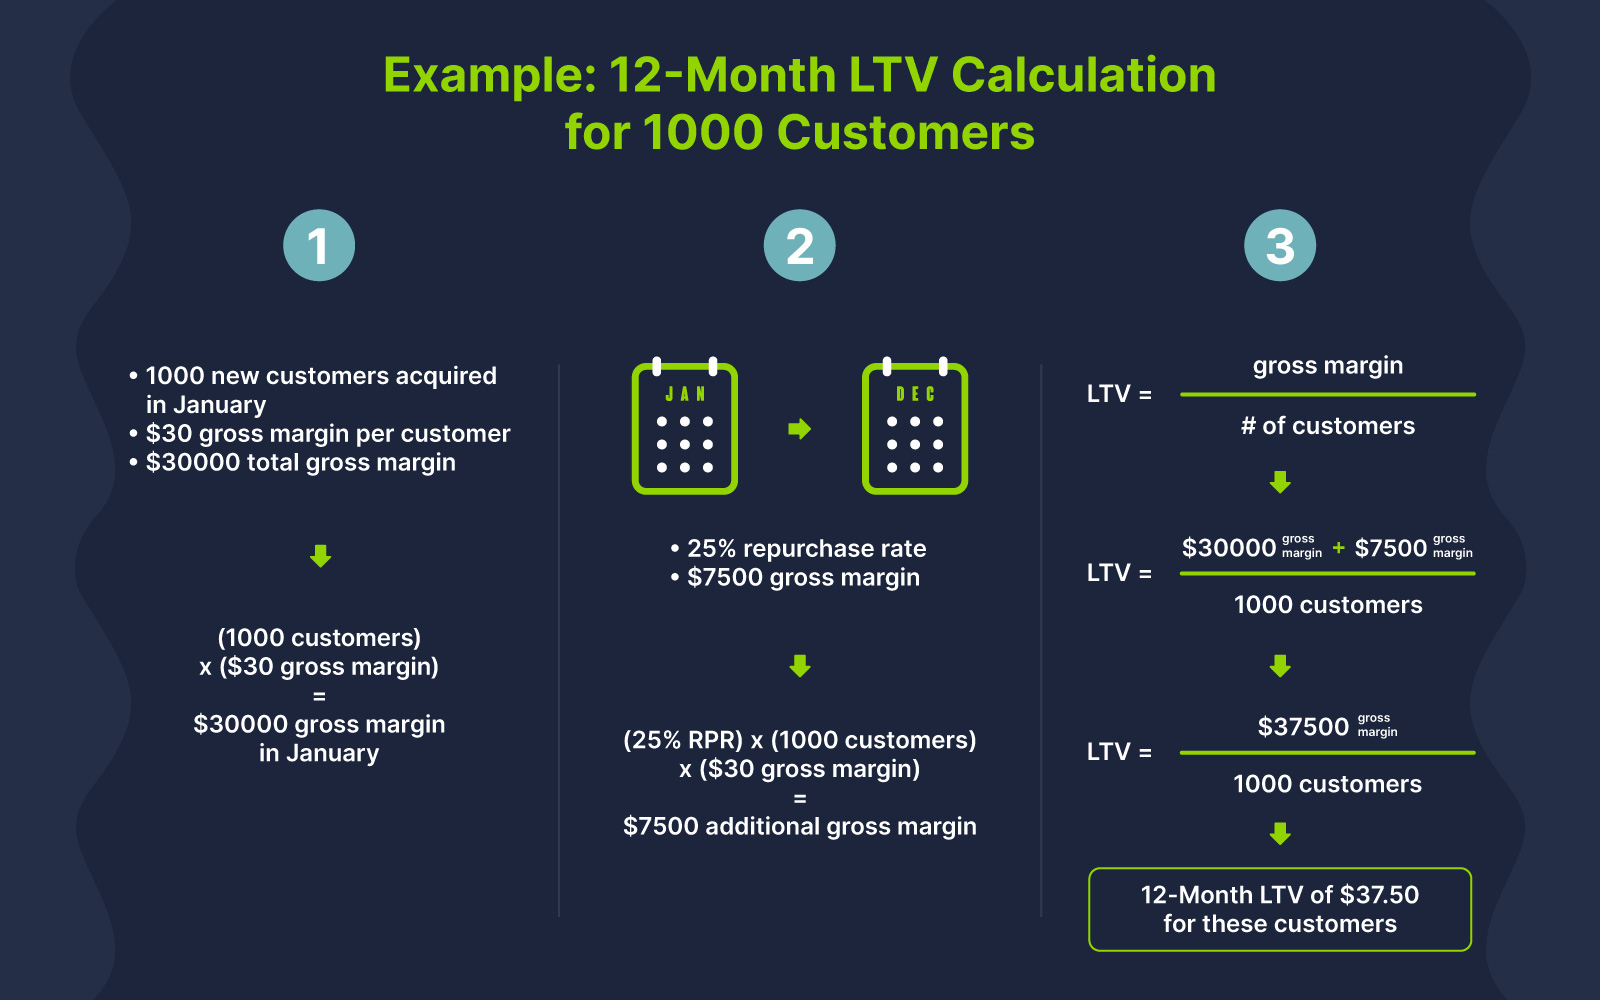 Example LTV calculation over 12 months for 1000 customers